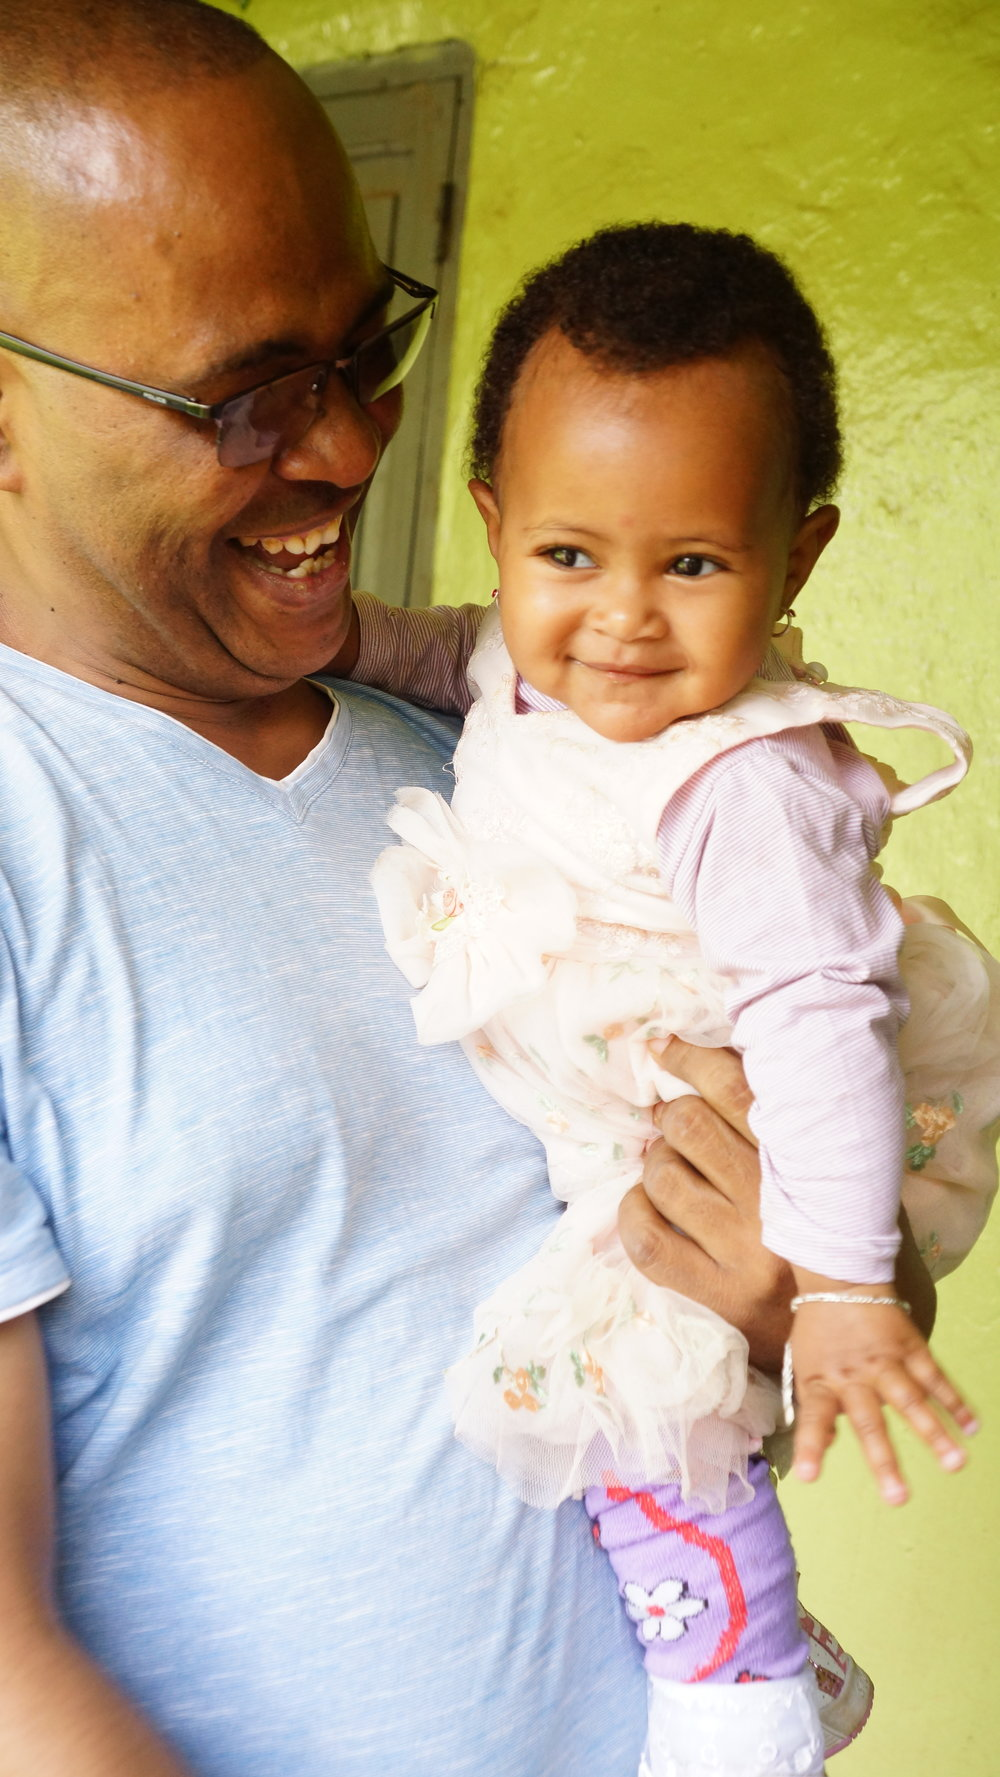 Sintayu M. with her new father. She has found a family with older siblings who absolutely dote on her and treat her like a little princess!